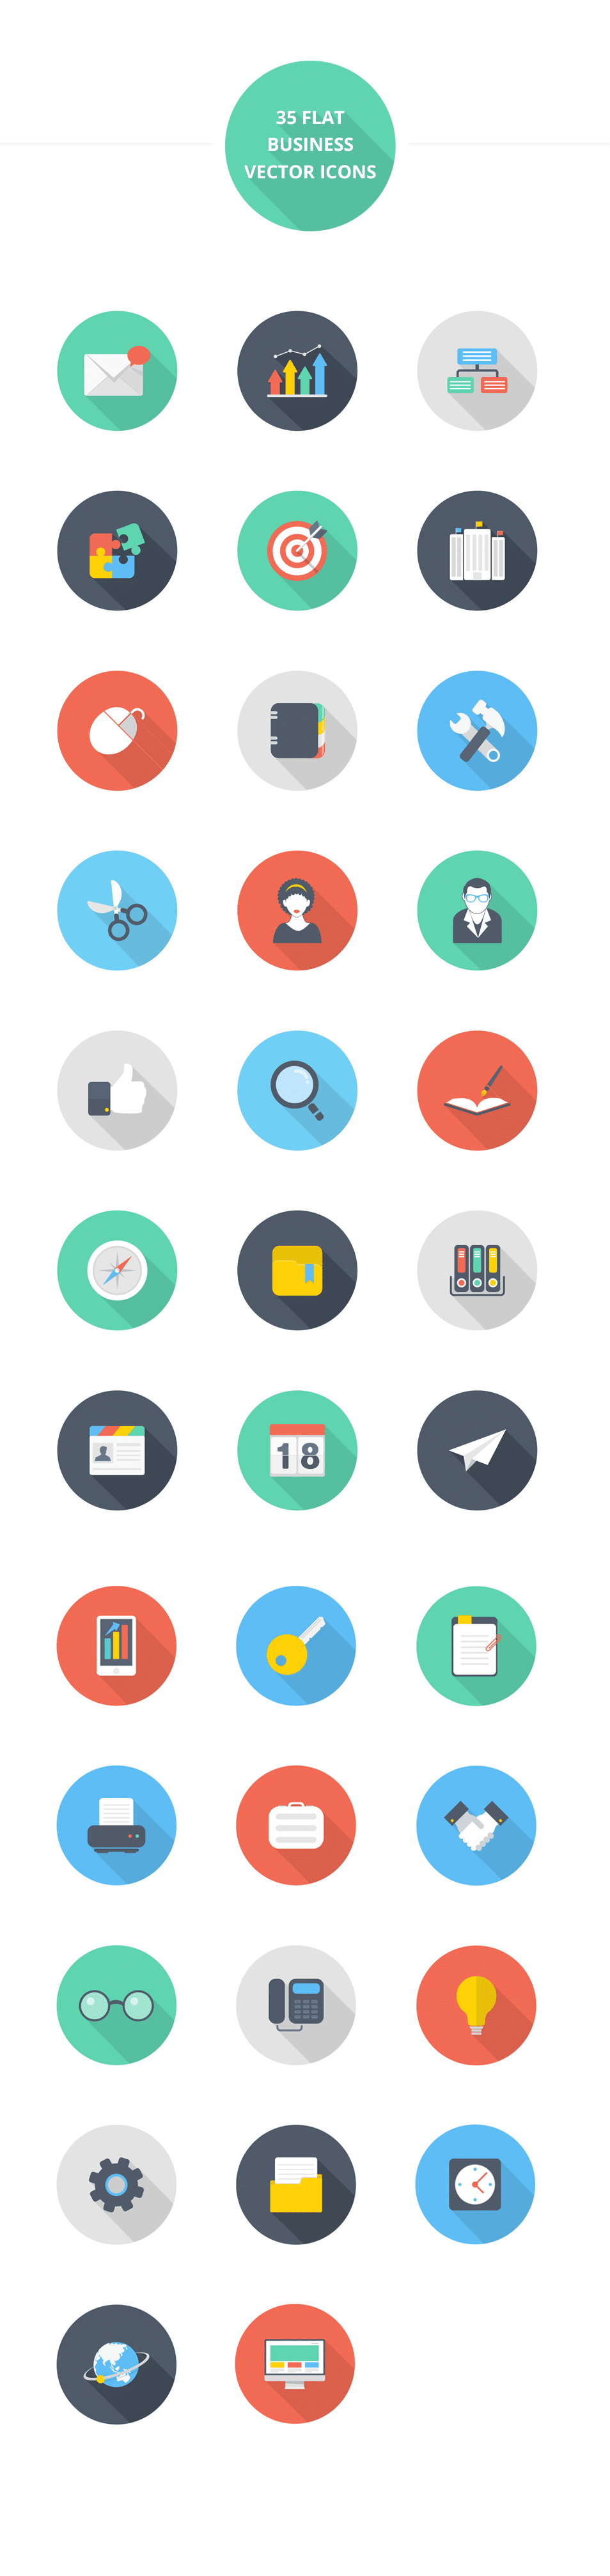 Beautiful Flat style icon set